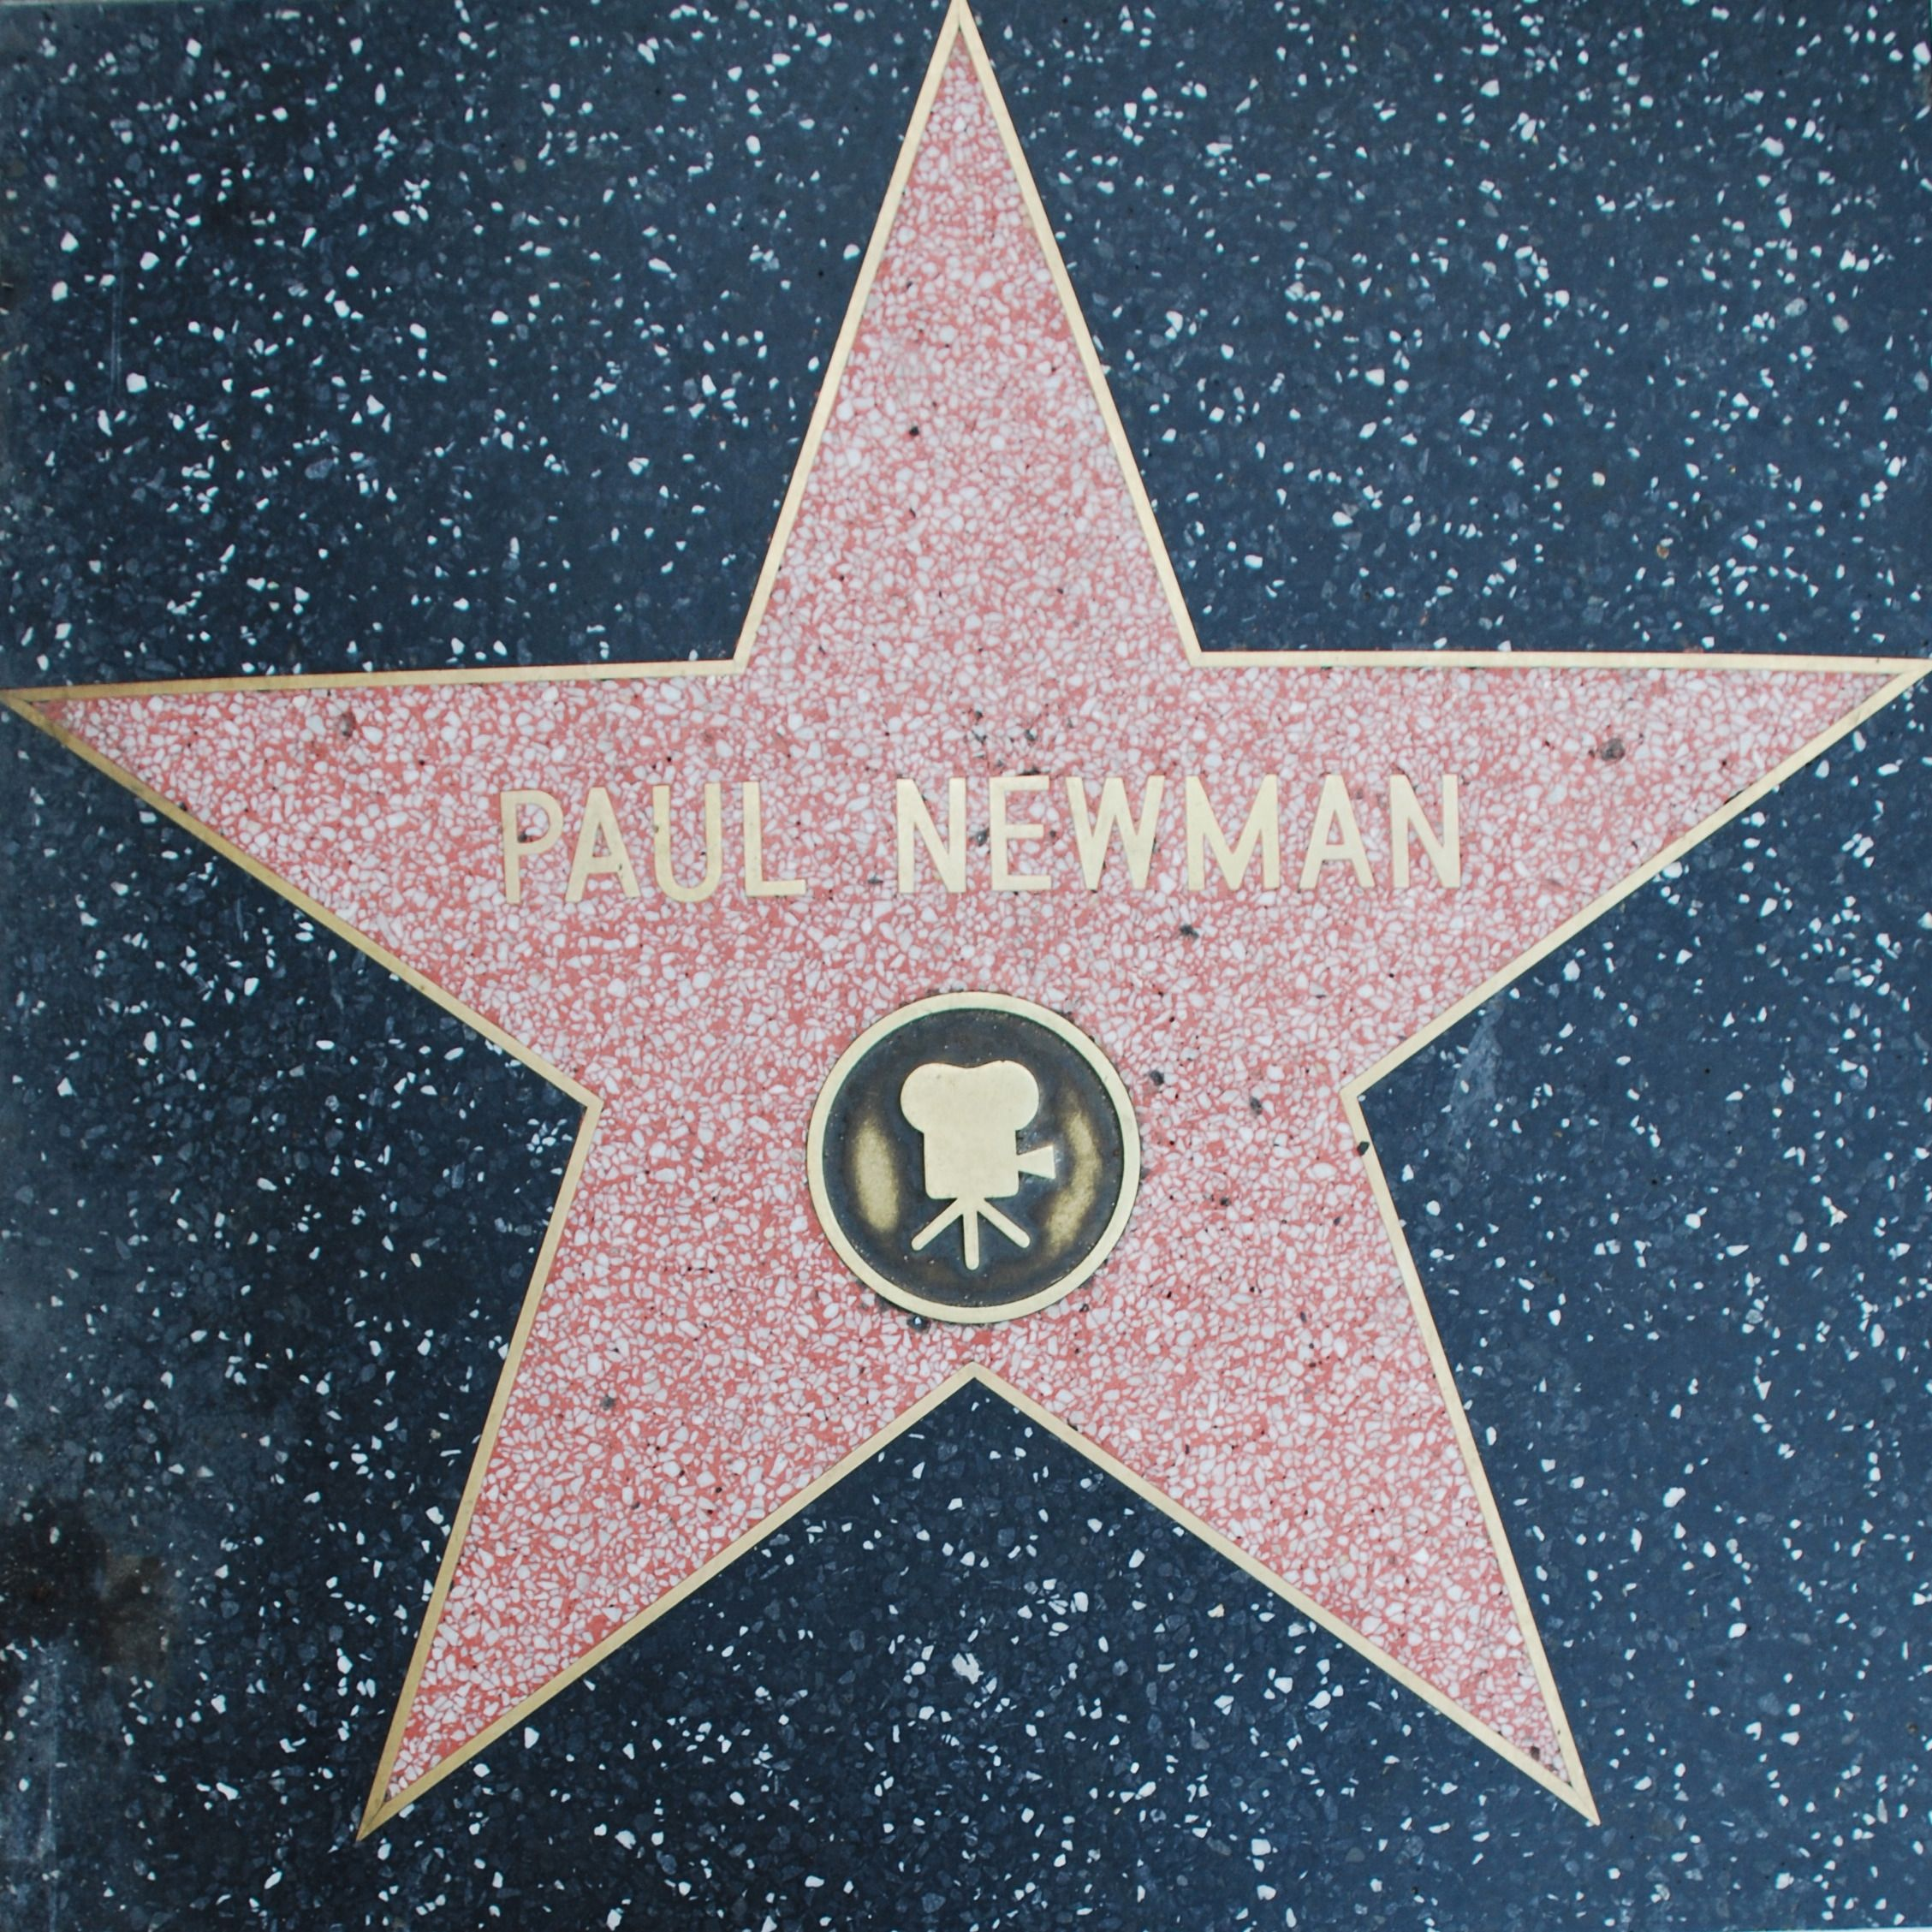 Paul Newman S Walk Of Fame Star Walk Of Fame Hollywood Walk Of Fame Paul Newman